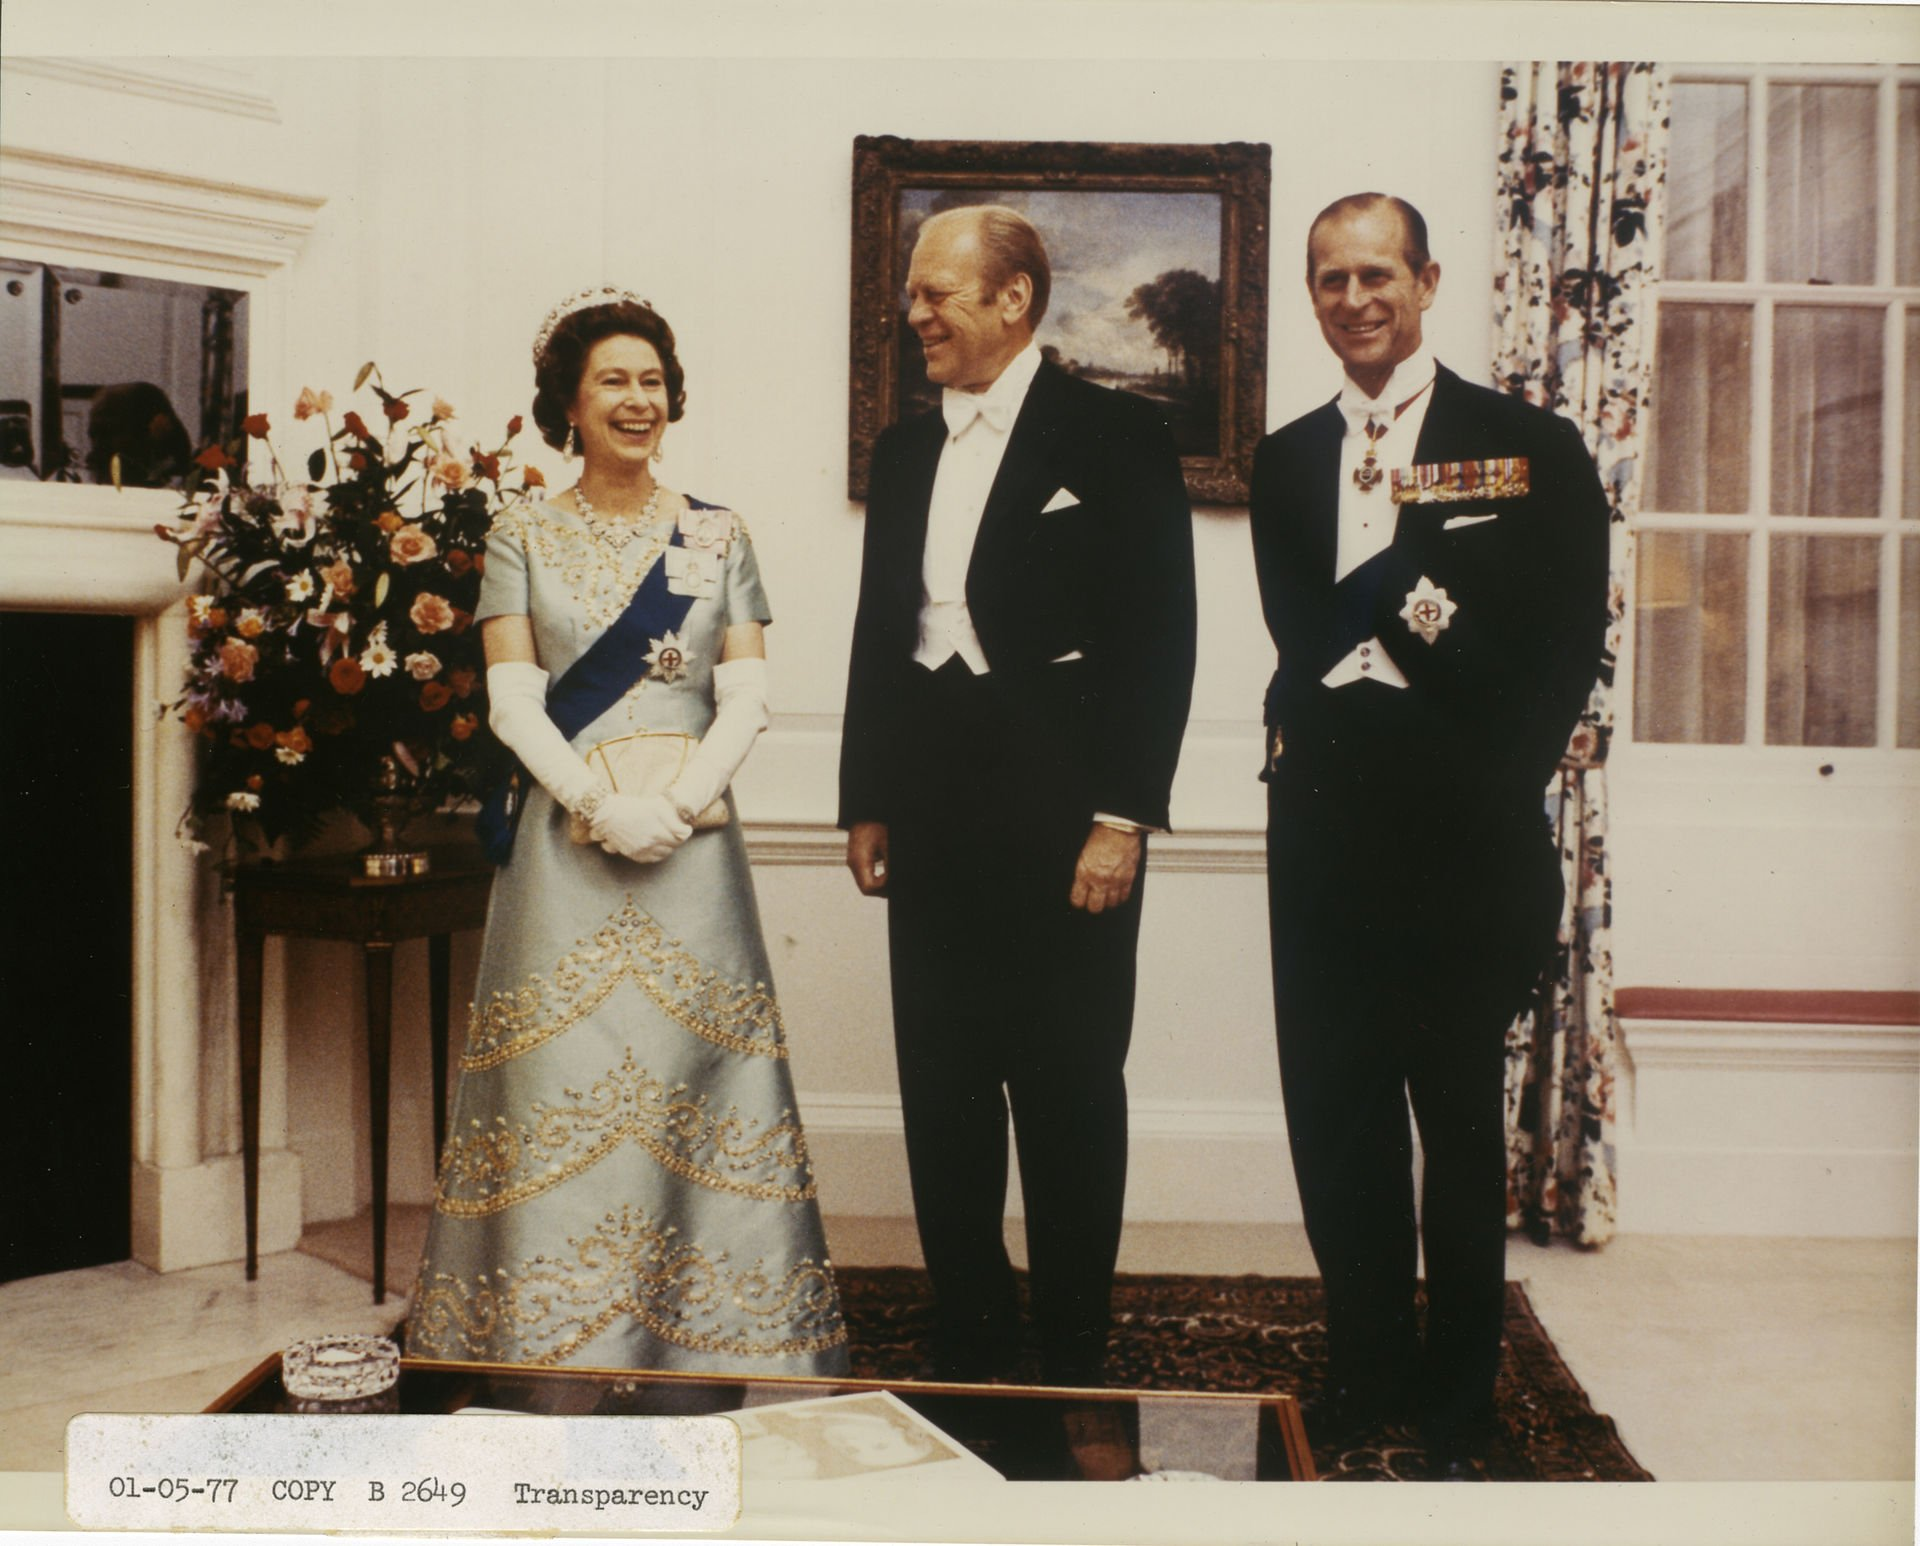 Queen Elizabeth II and the Duke of Edinburgh meet with President Gerald Ford at the British Embassy in July 1976. Photo courtesy of the White House Photographic Office.